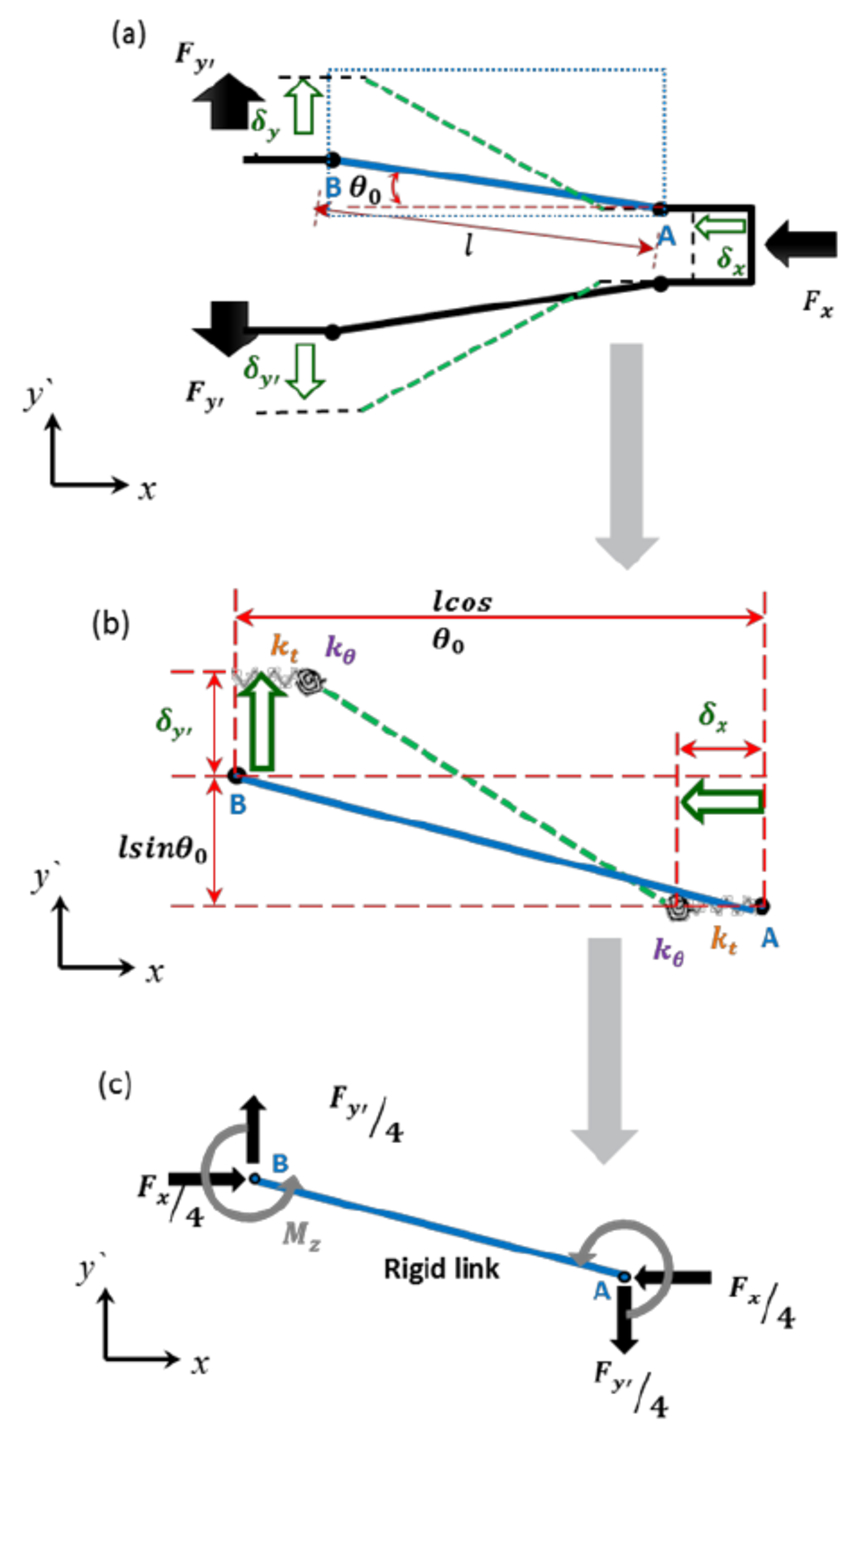 Free Body Diagram Spring Model Of Flexure Hinges And Free Body Diagram In X Y Plane